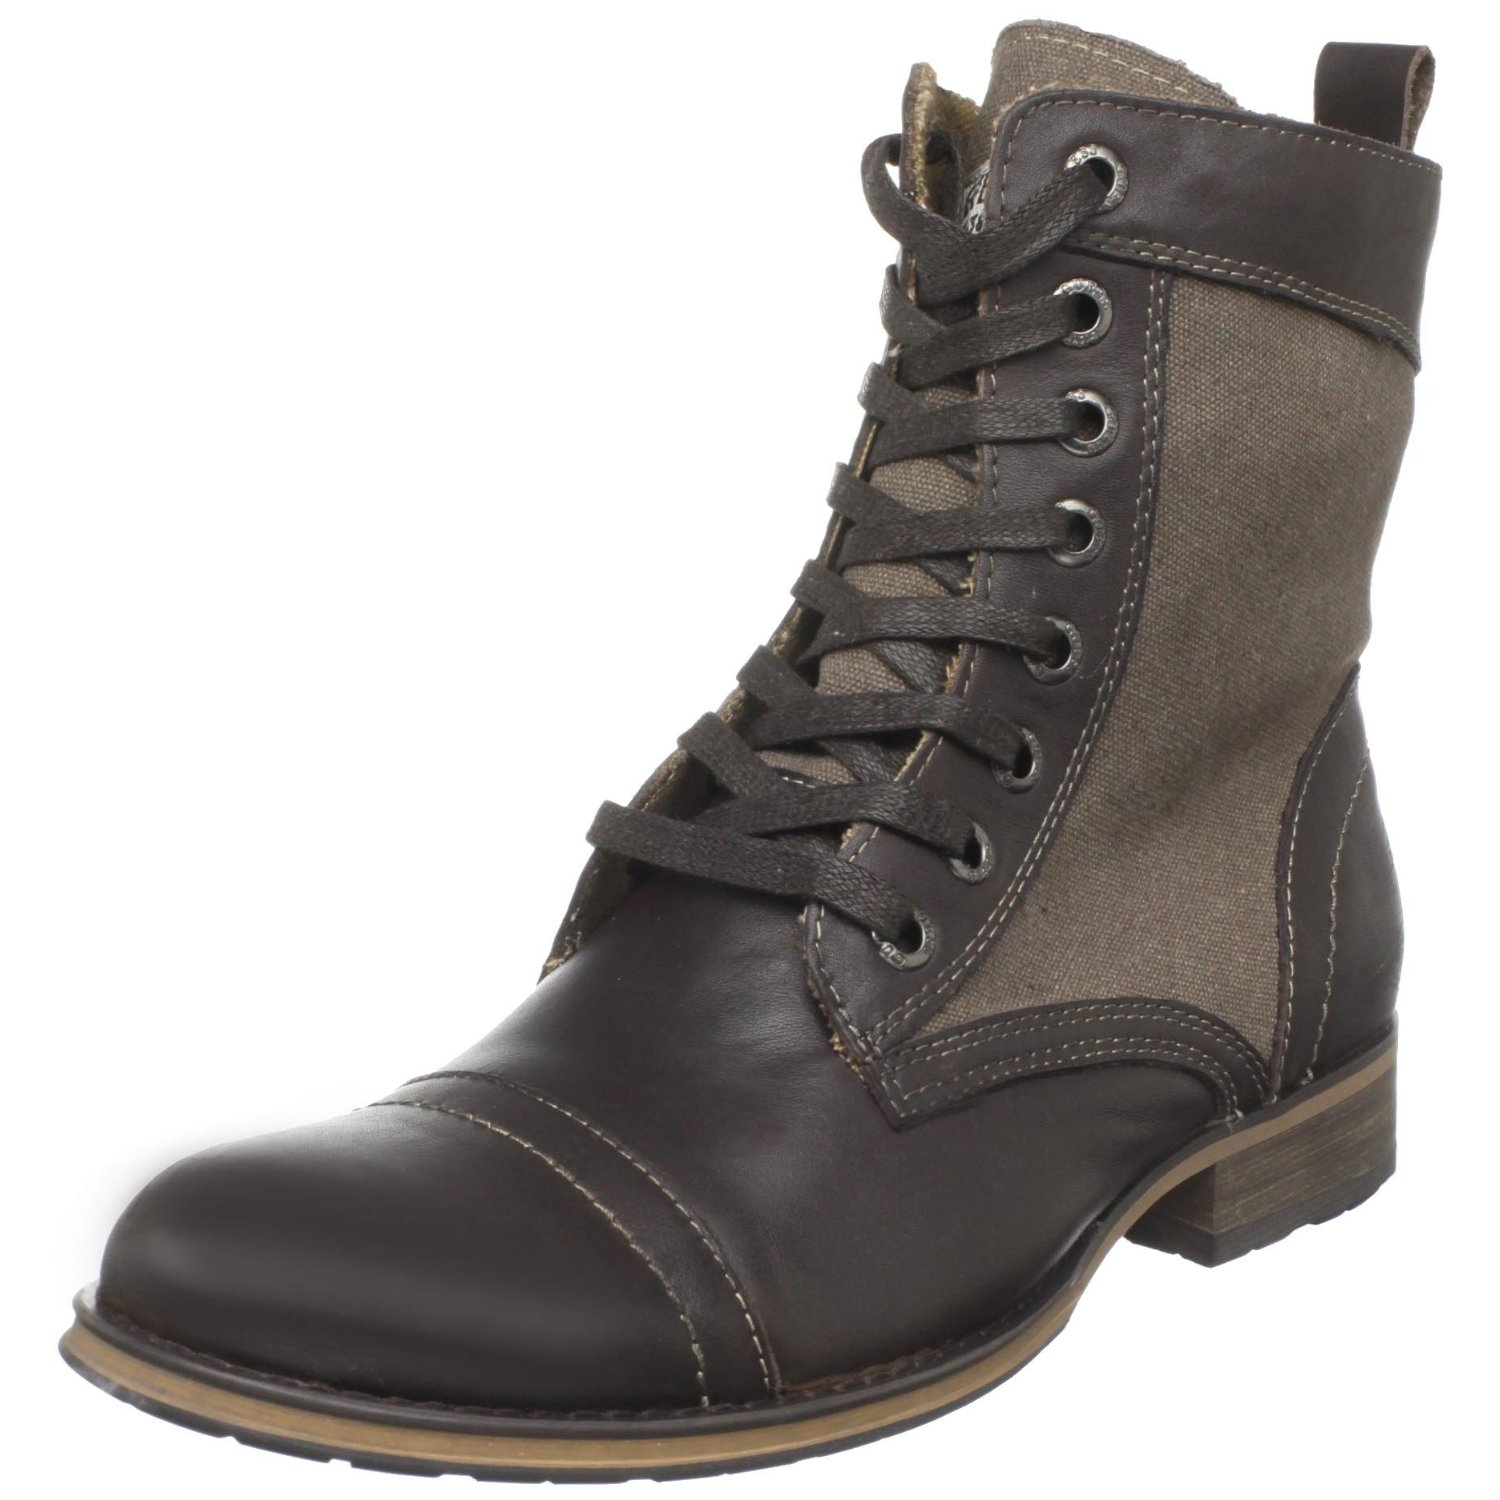 Guess Mens Alfred Boot In Brown For Men Lyst